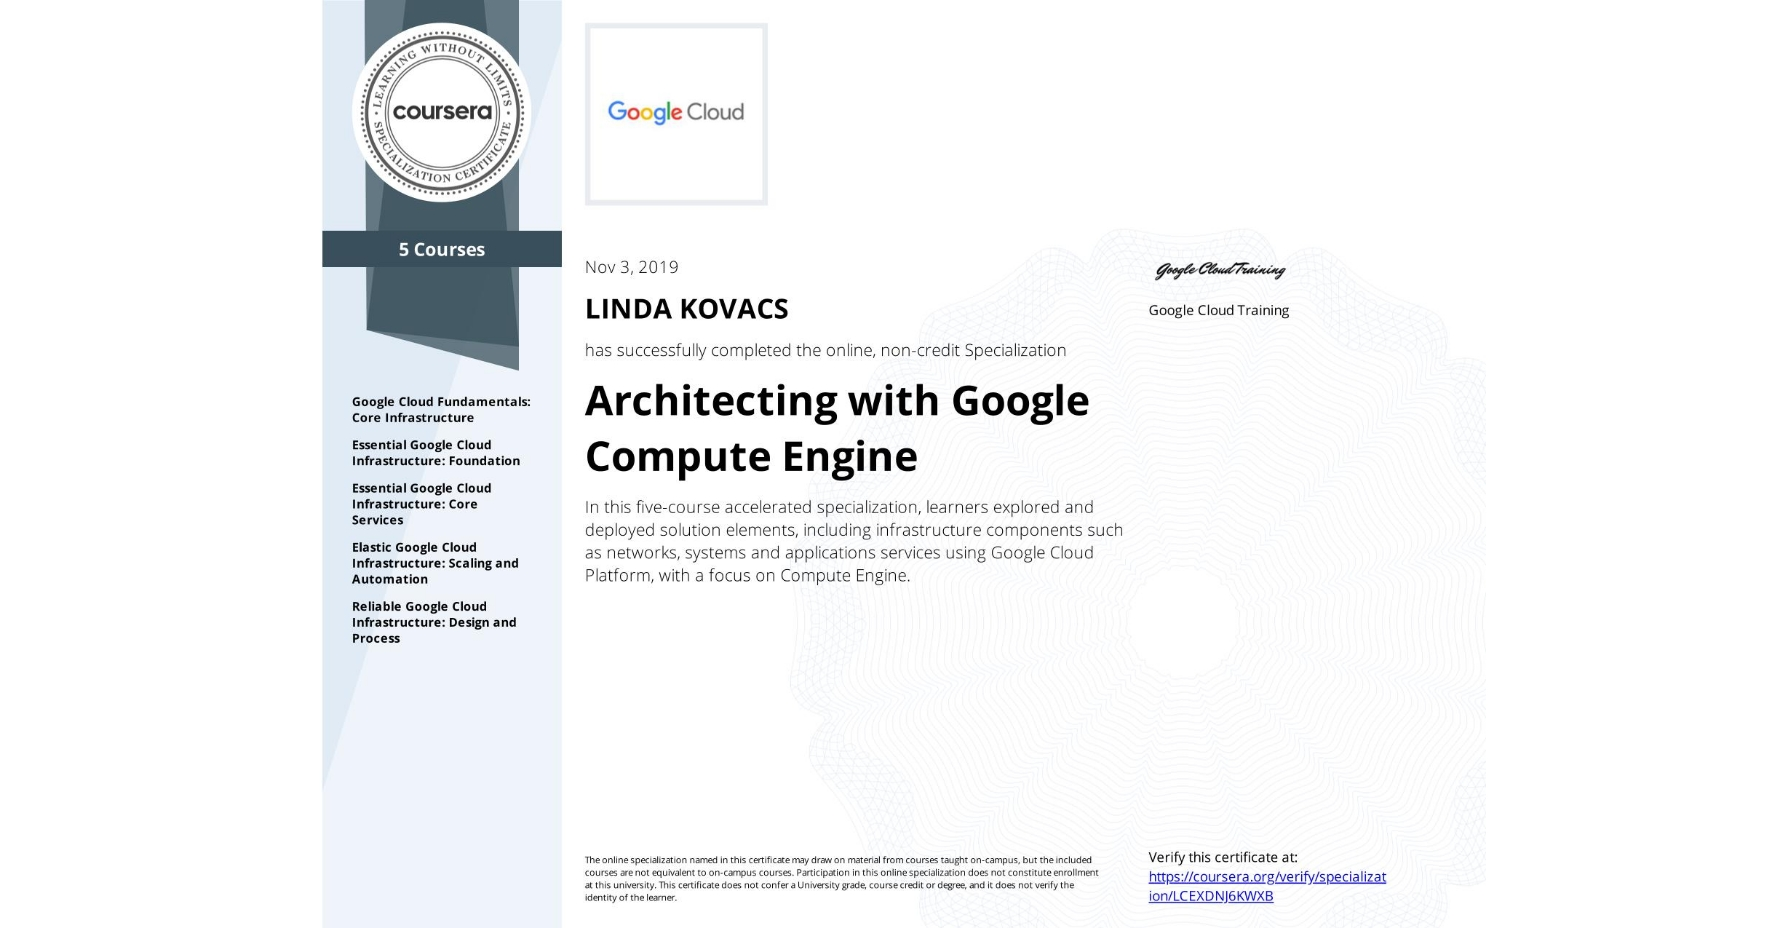 View certificate for LINDA RODICA MIHAELA  KOVACS, Architecting with Google Compute Engine, offered through Coursera. In this five-course accelerated specialization, learners explored and deployed solution elements, including infrastructure components such as networks, systems and applications services using Google Cloud Platform, with a focus on Compute Engine.